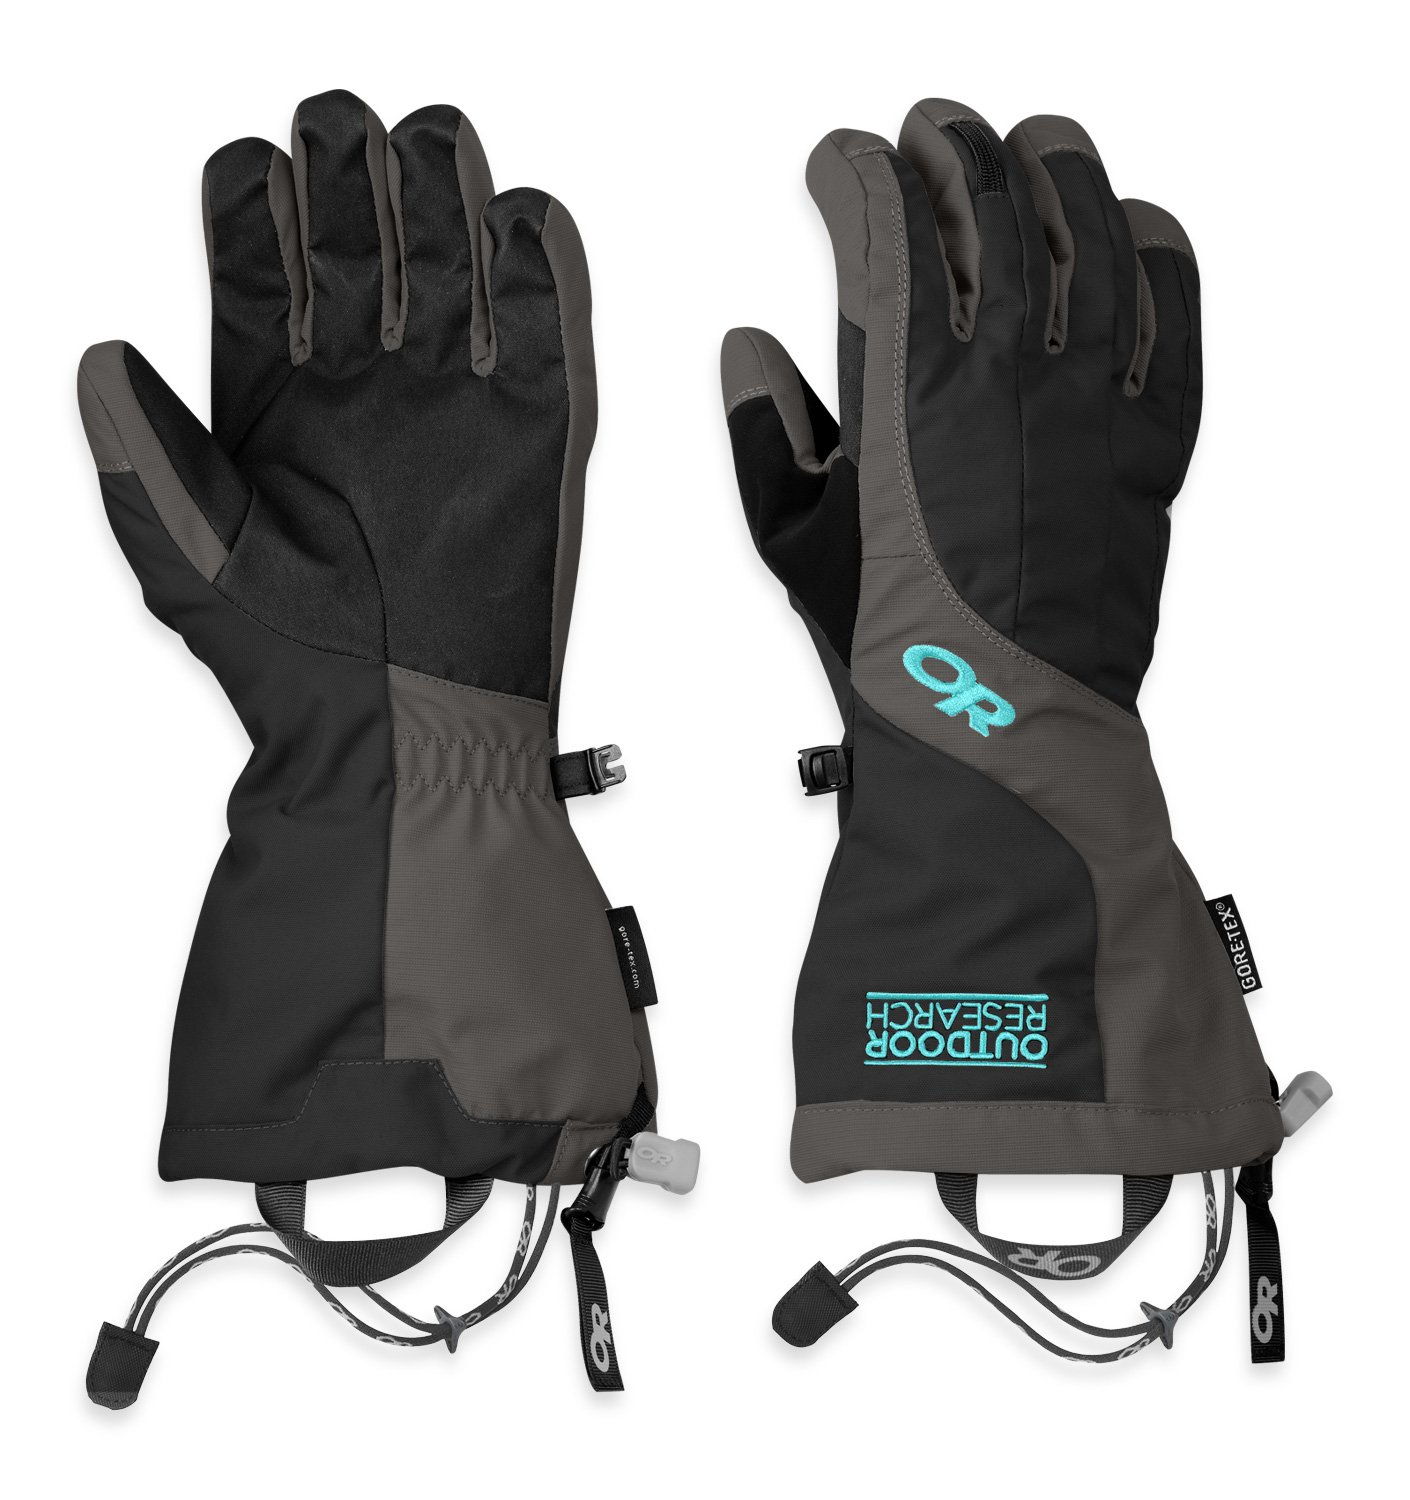 Outdoor Research Women's arete gloves, Black/Charcoal, Medium by Outdoor Research